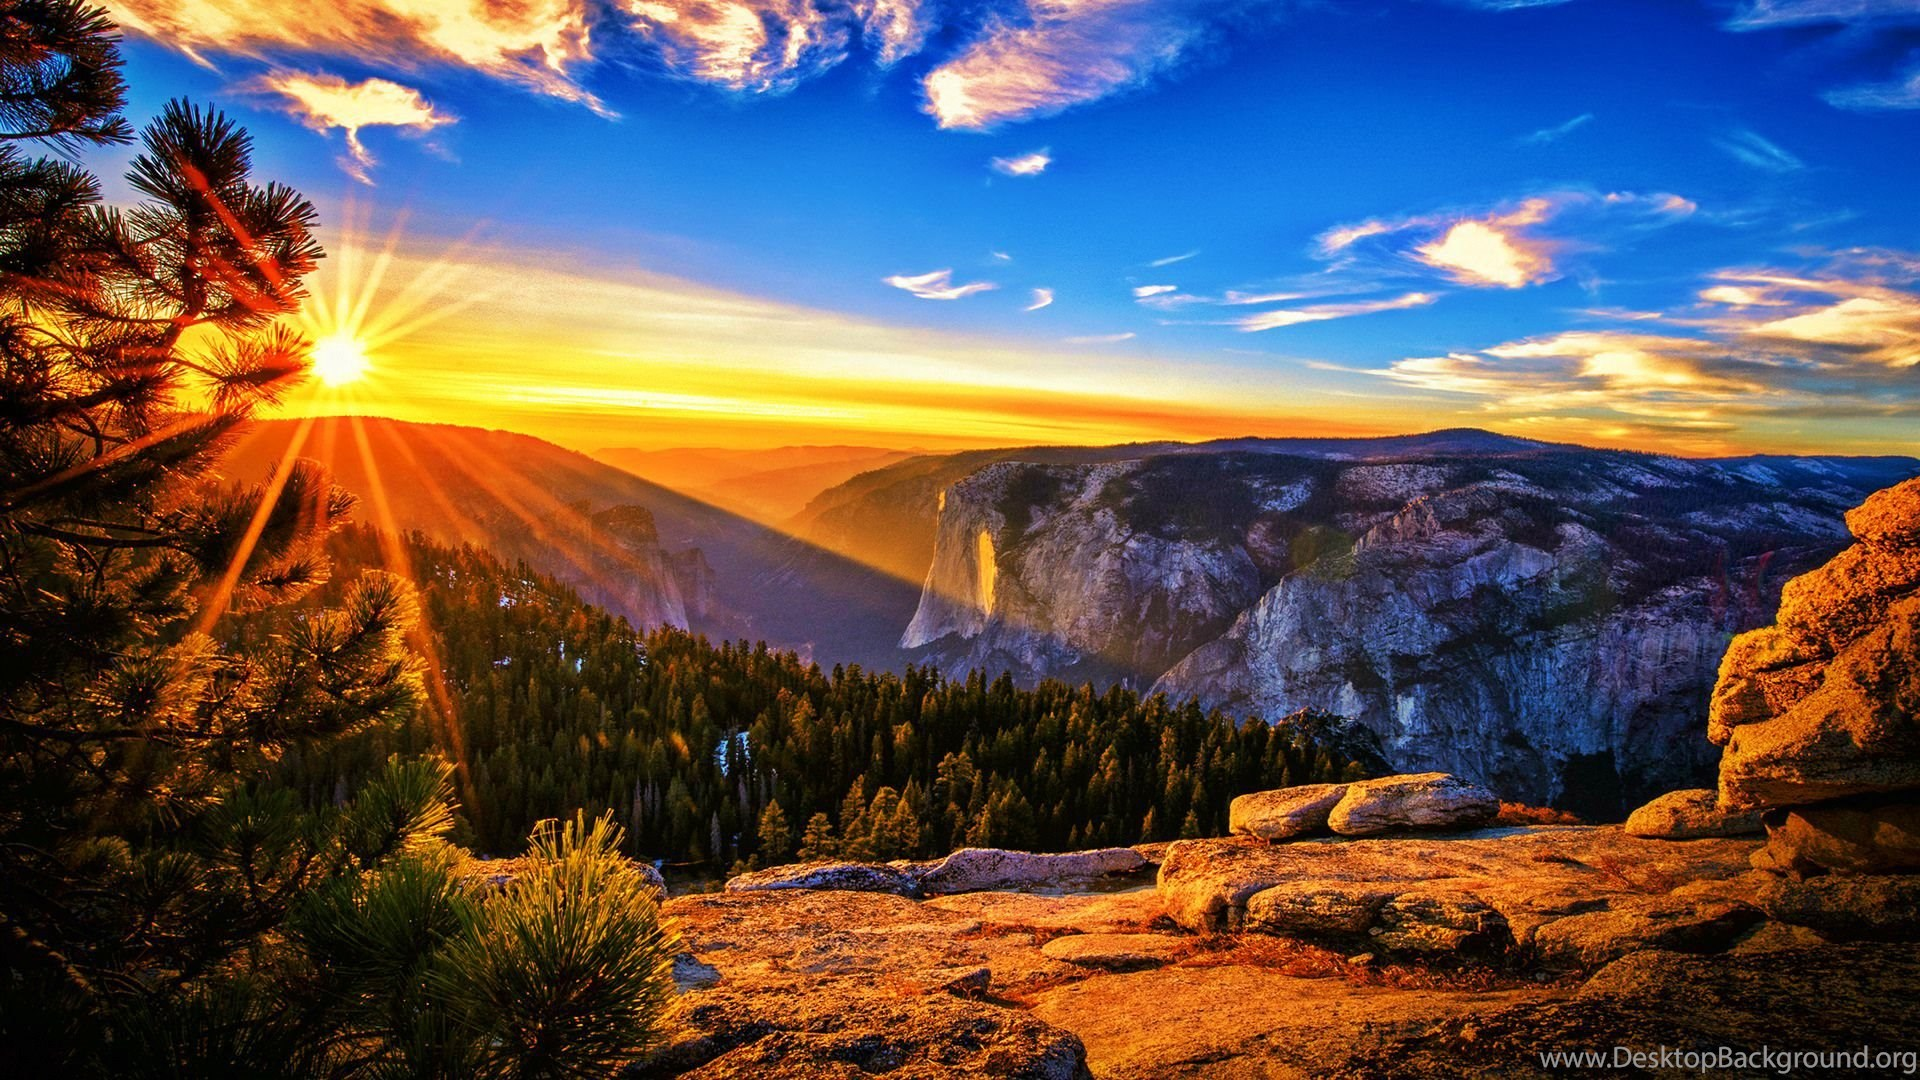 Mountain Hd Wallpapers 1080p Posted By John Simpson